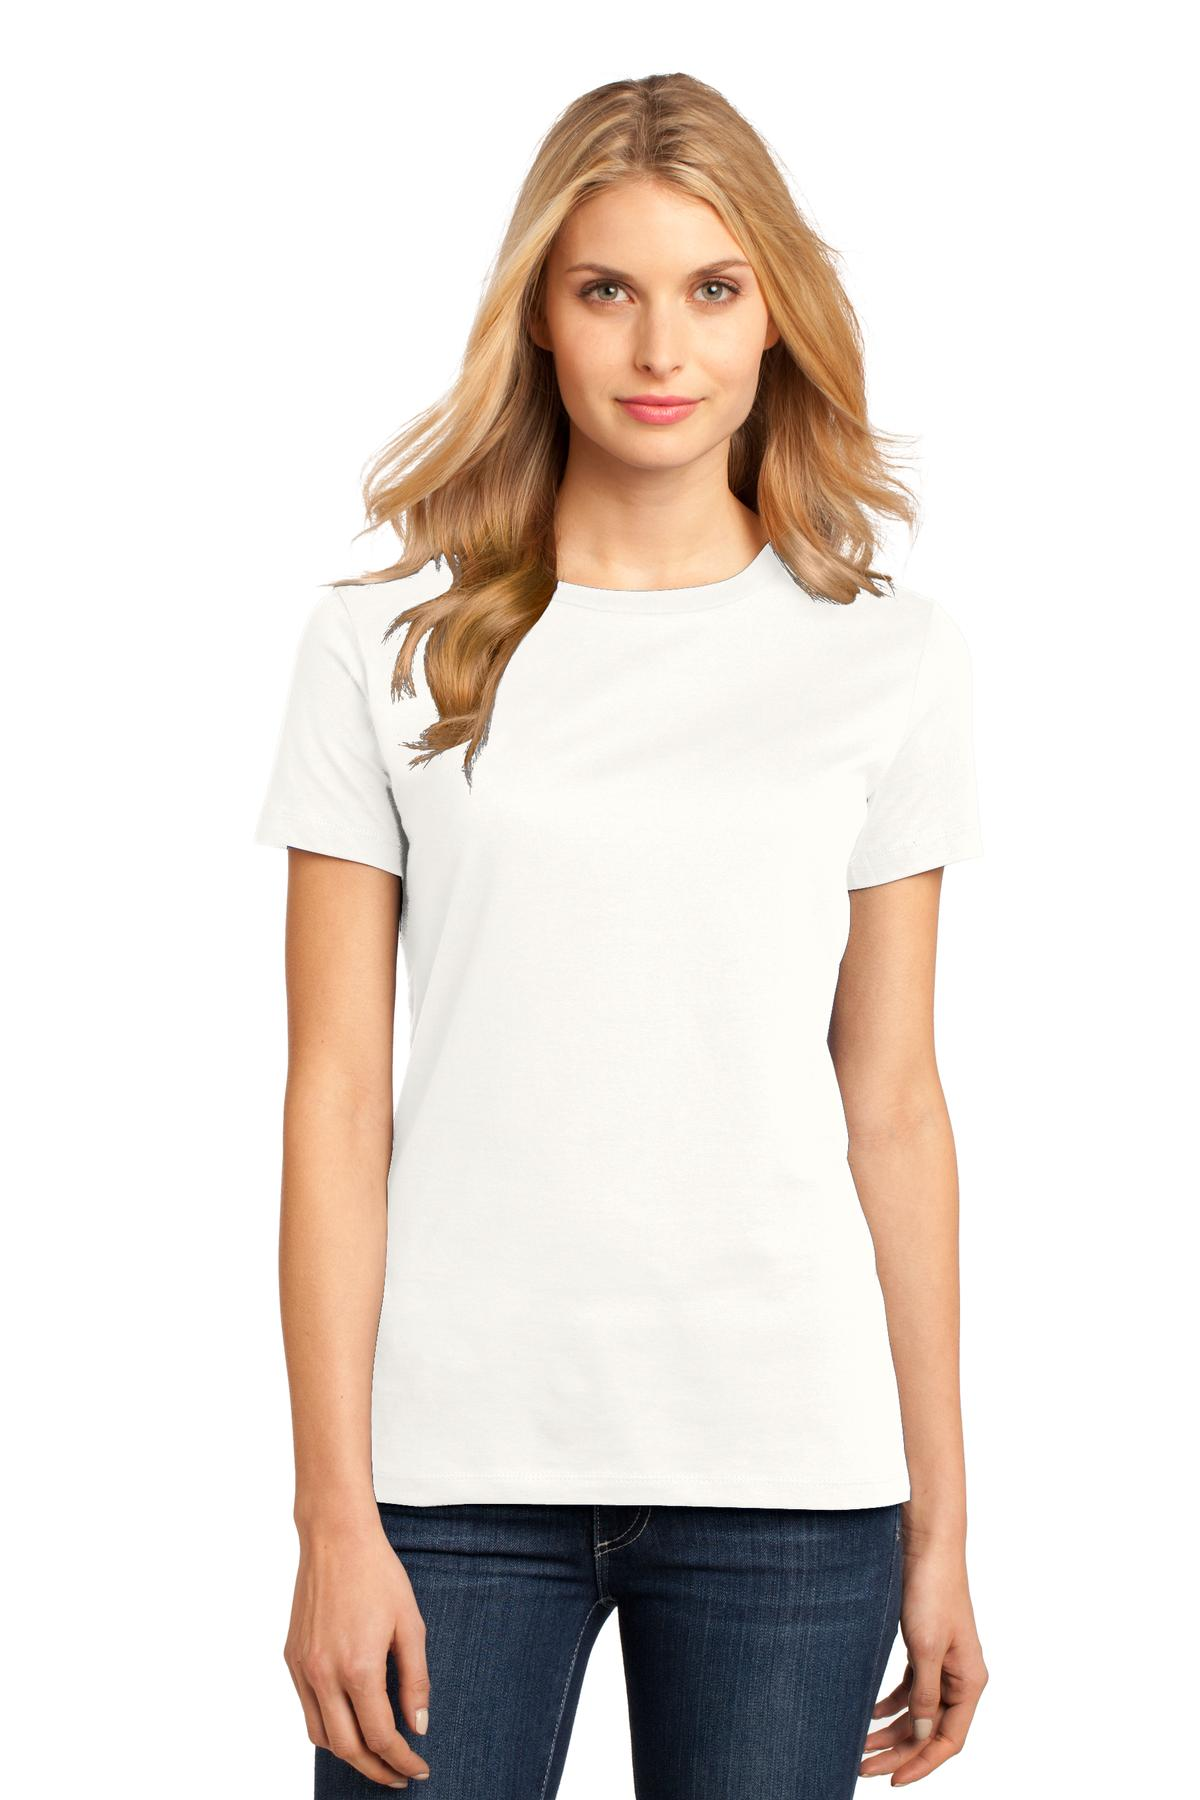 District ®  Women's Perfect Weight ® Tee. DM104L - Bright White